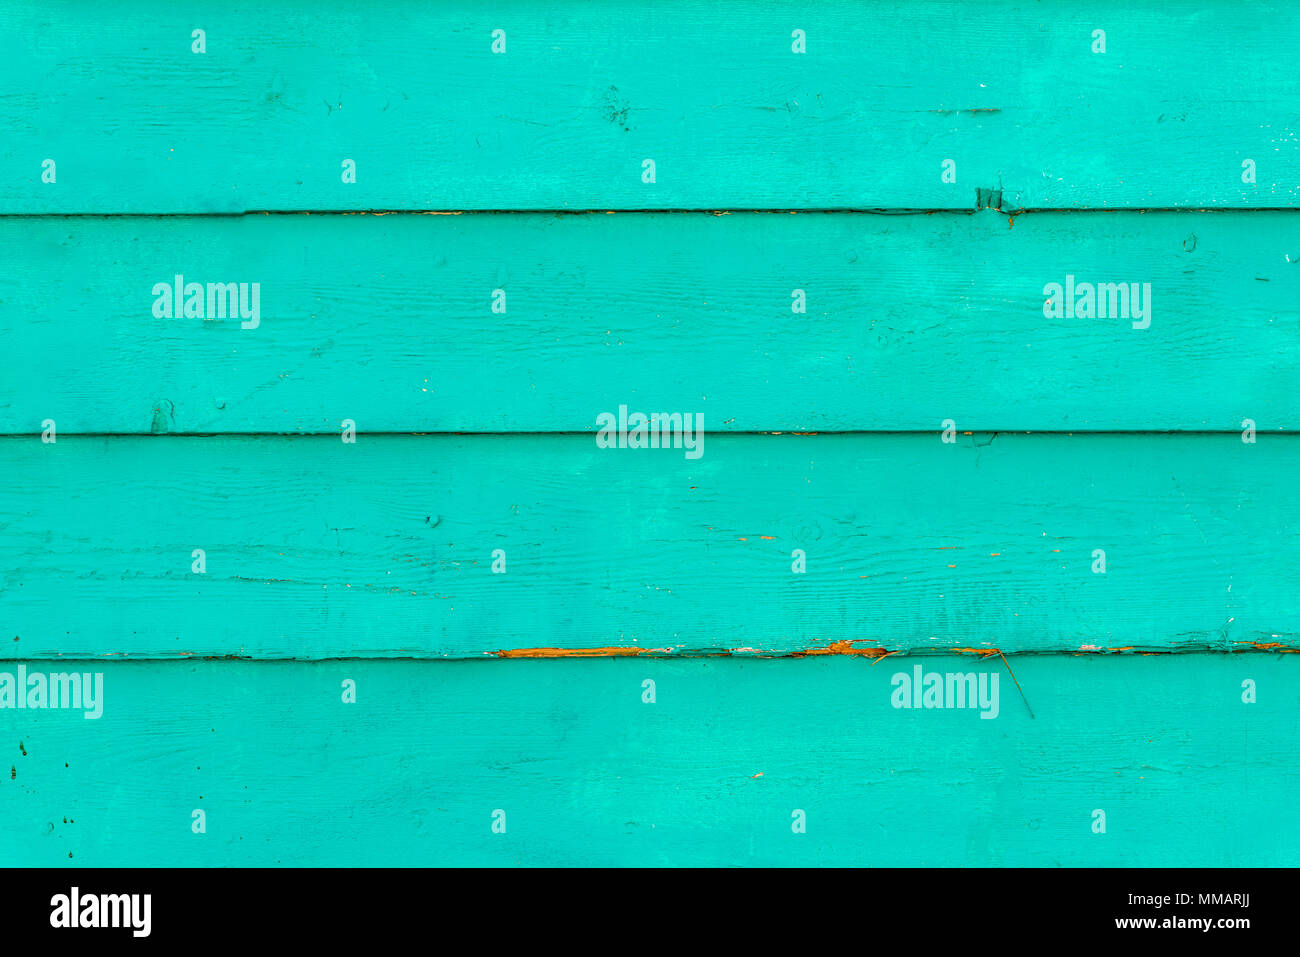 A teal green wooden background - Stock Image